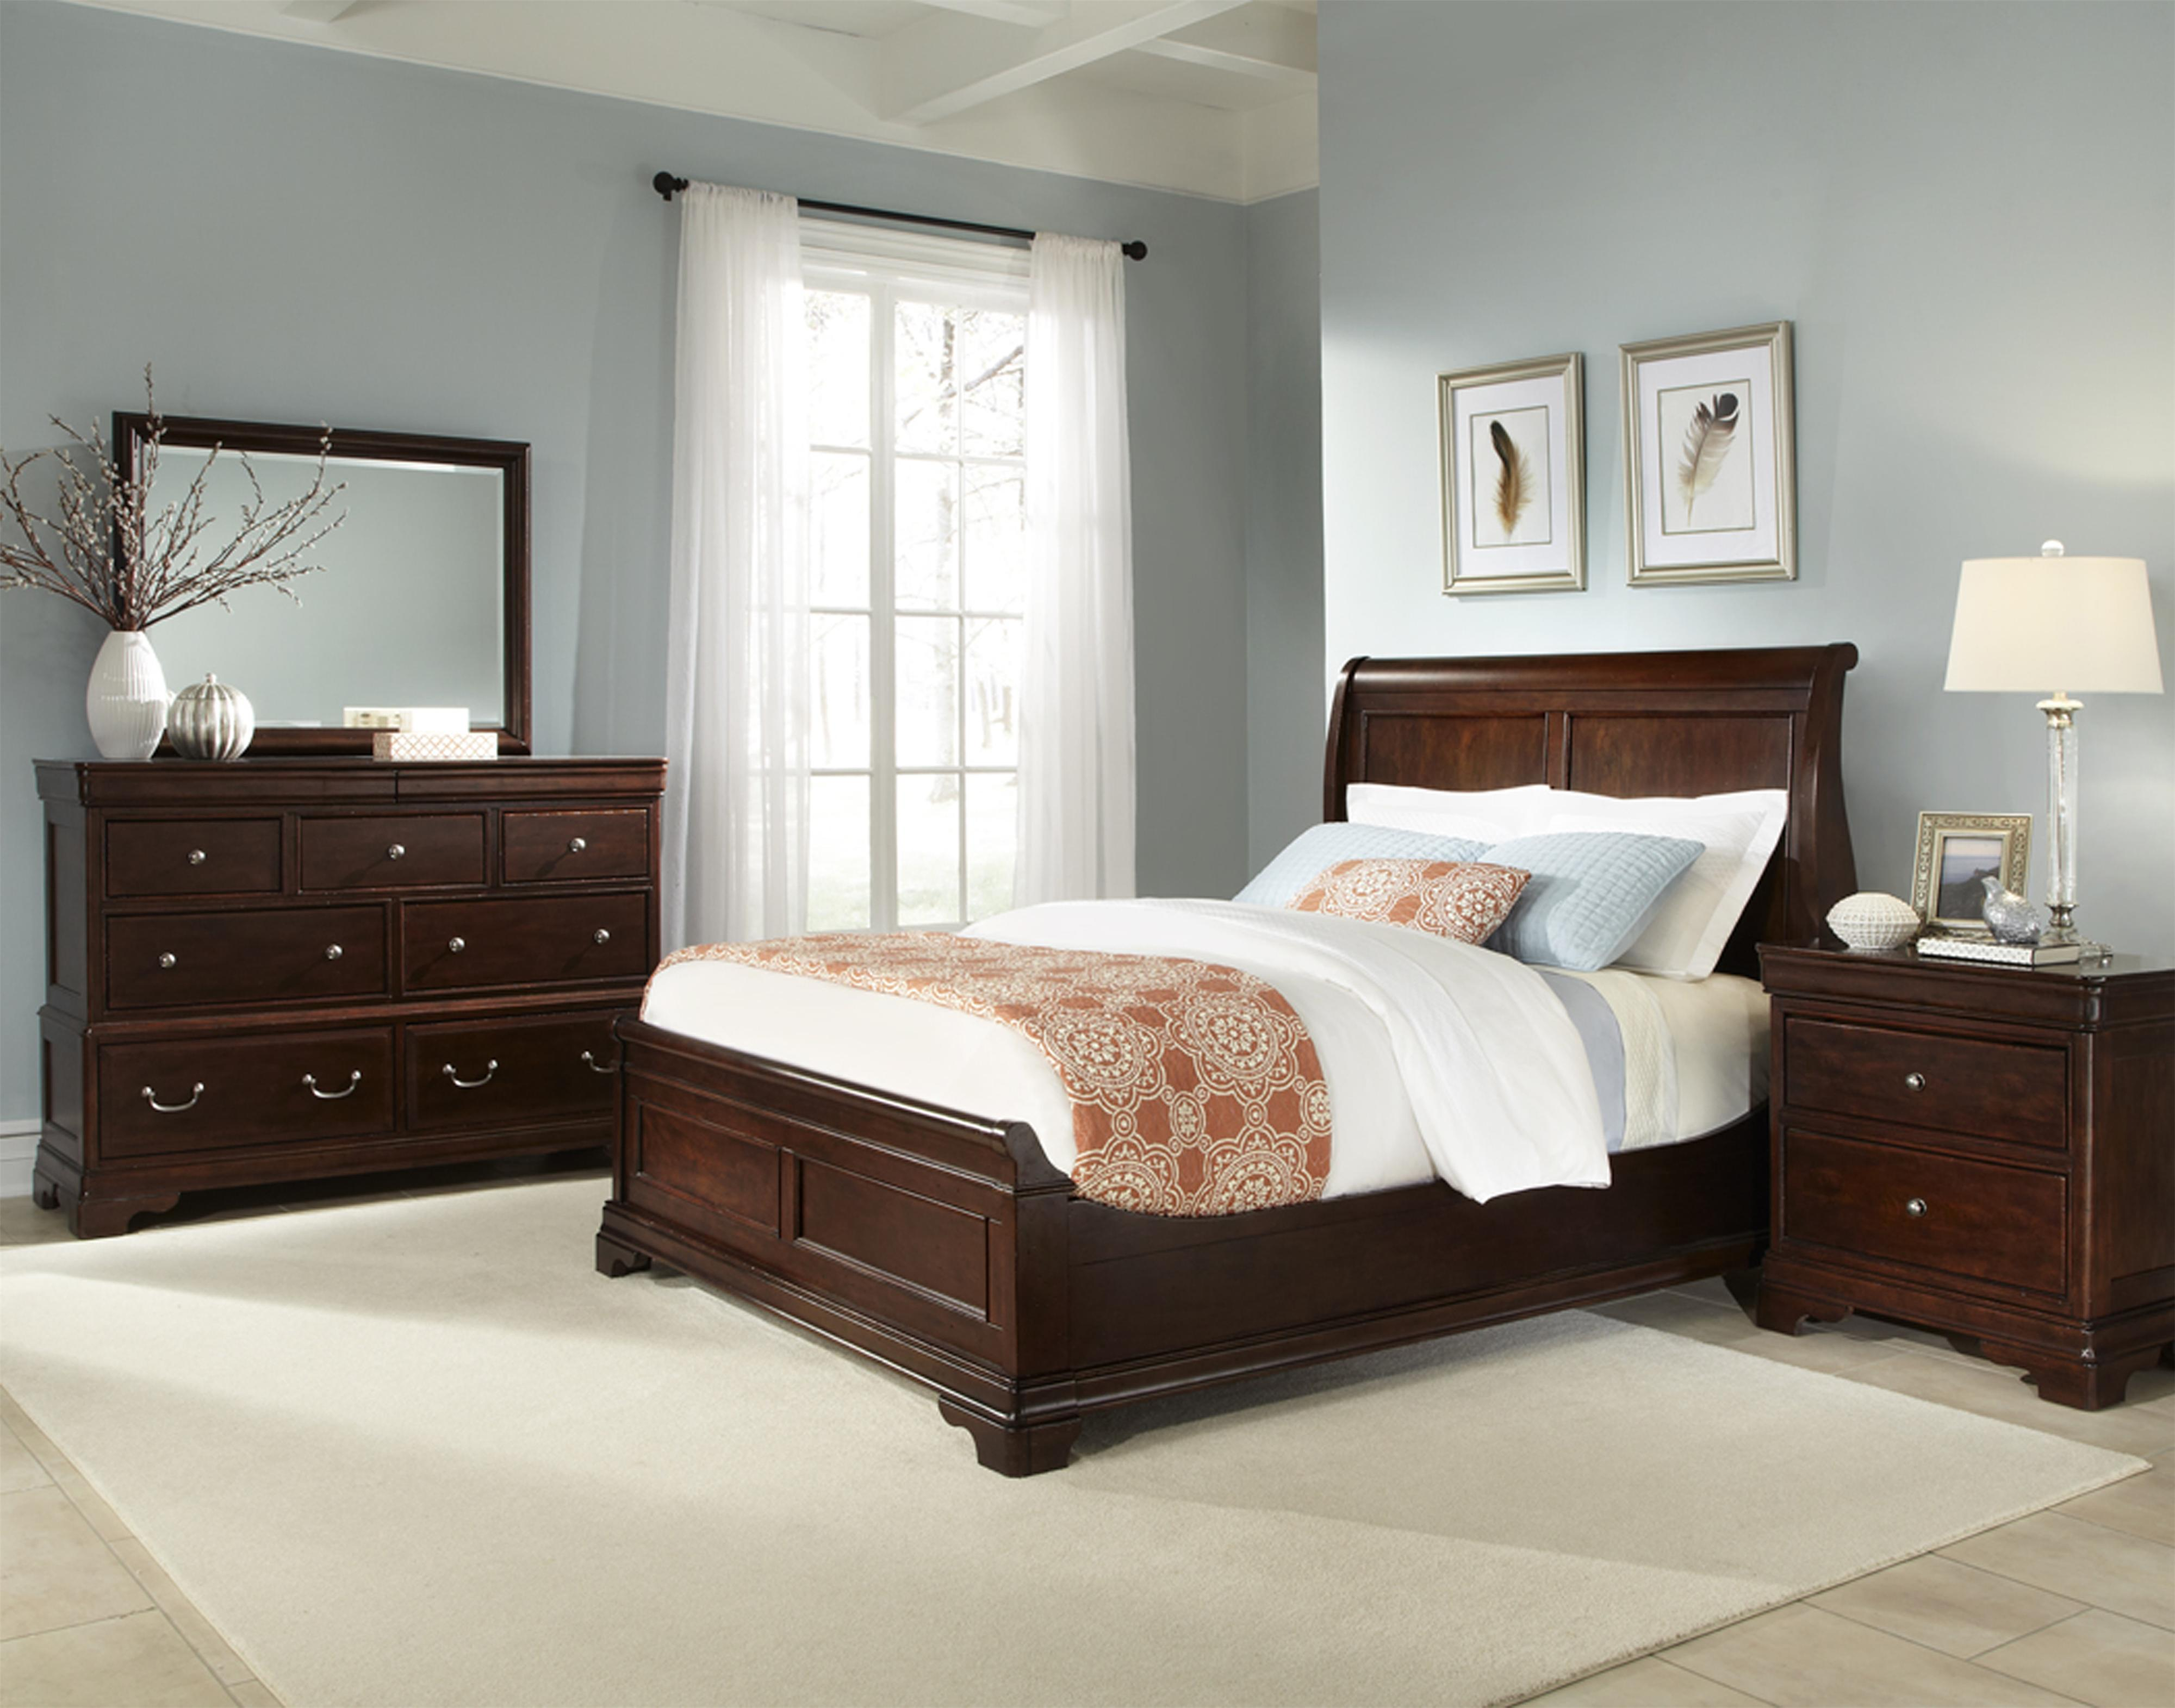 Cresent Fine Furniture Provence Queen Bedroom Group - Item Number: 1700 Q Bedroom Group 2